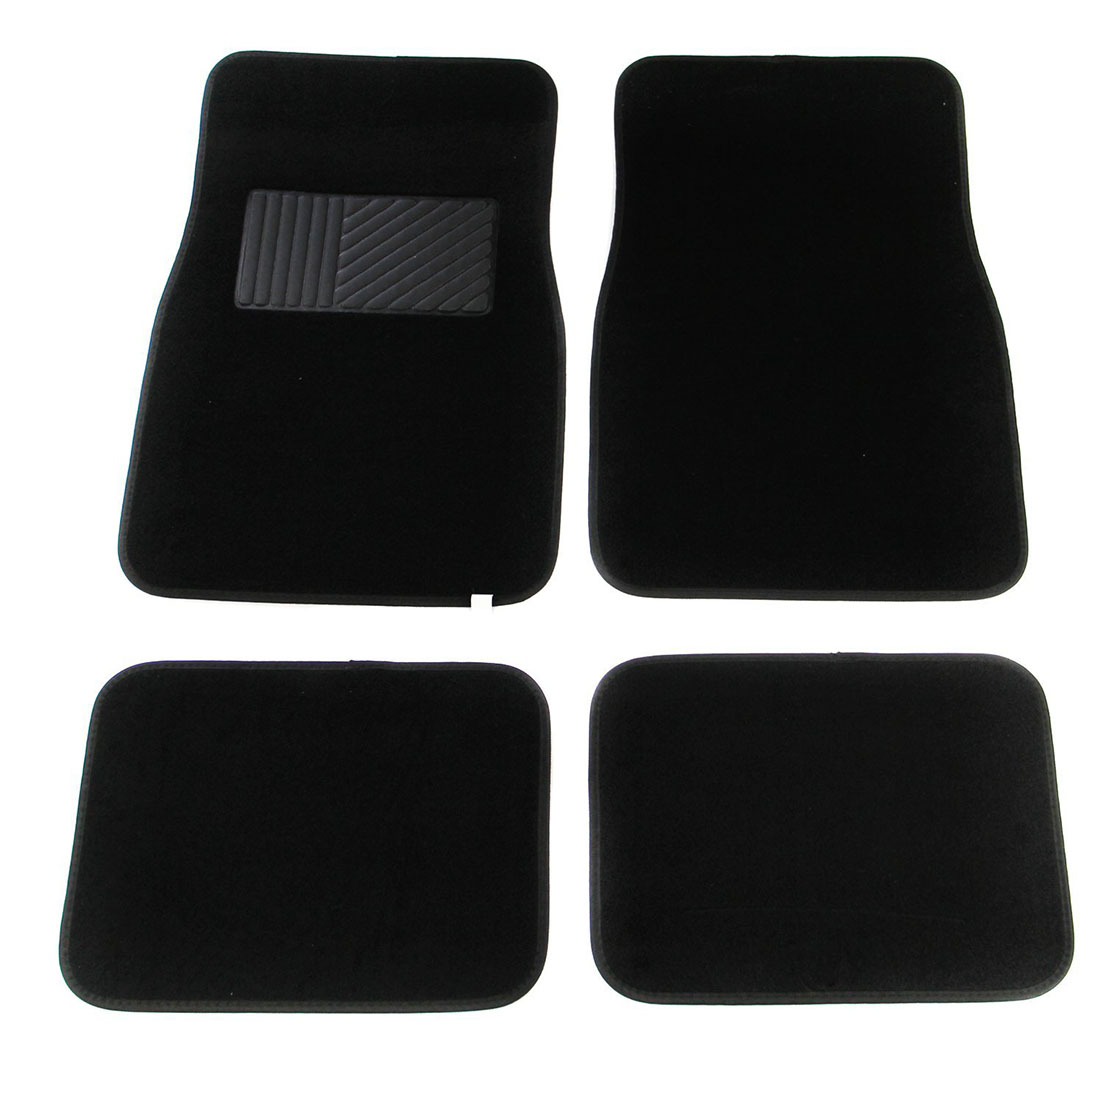 Multi Season Carpet Floor Mats 4pc Set Black Fit Most Cars, SUVs, Vans And Trucks